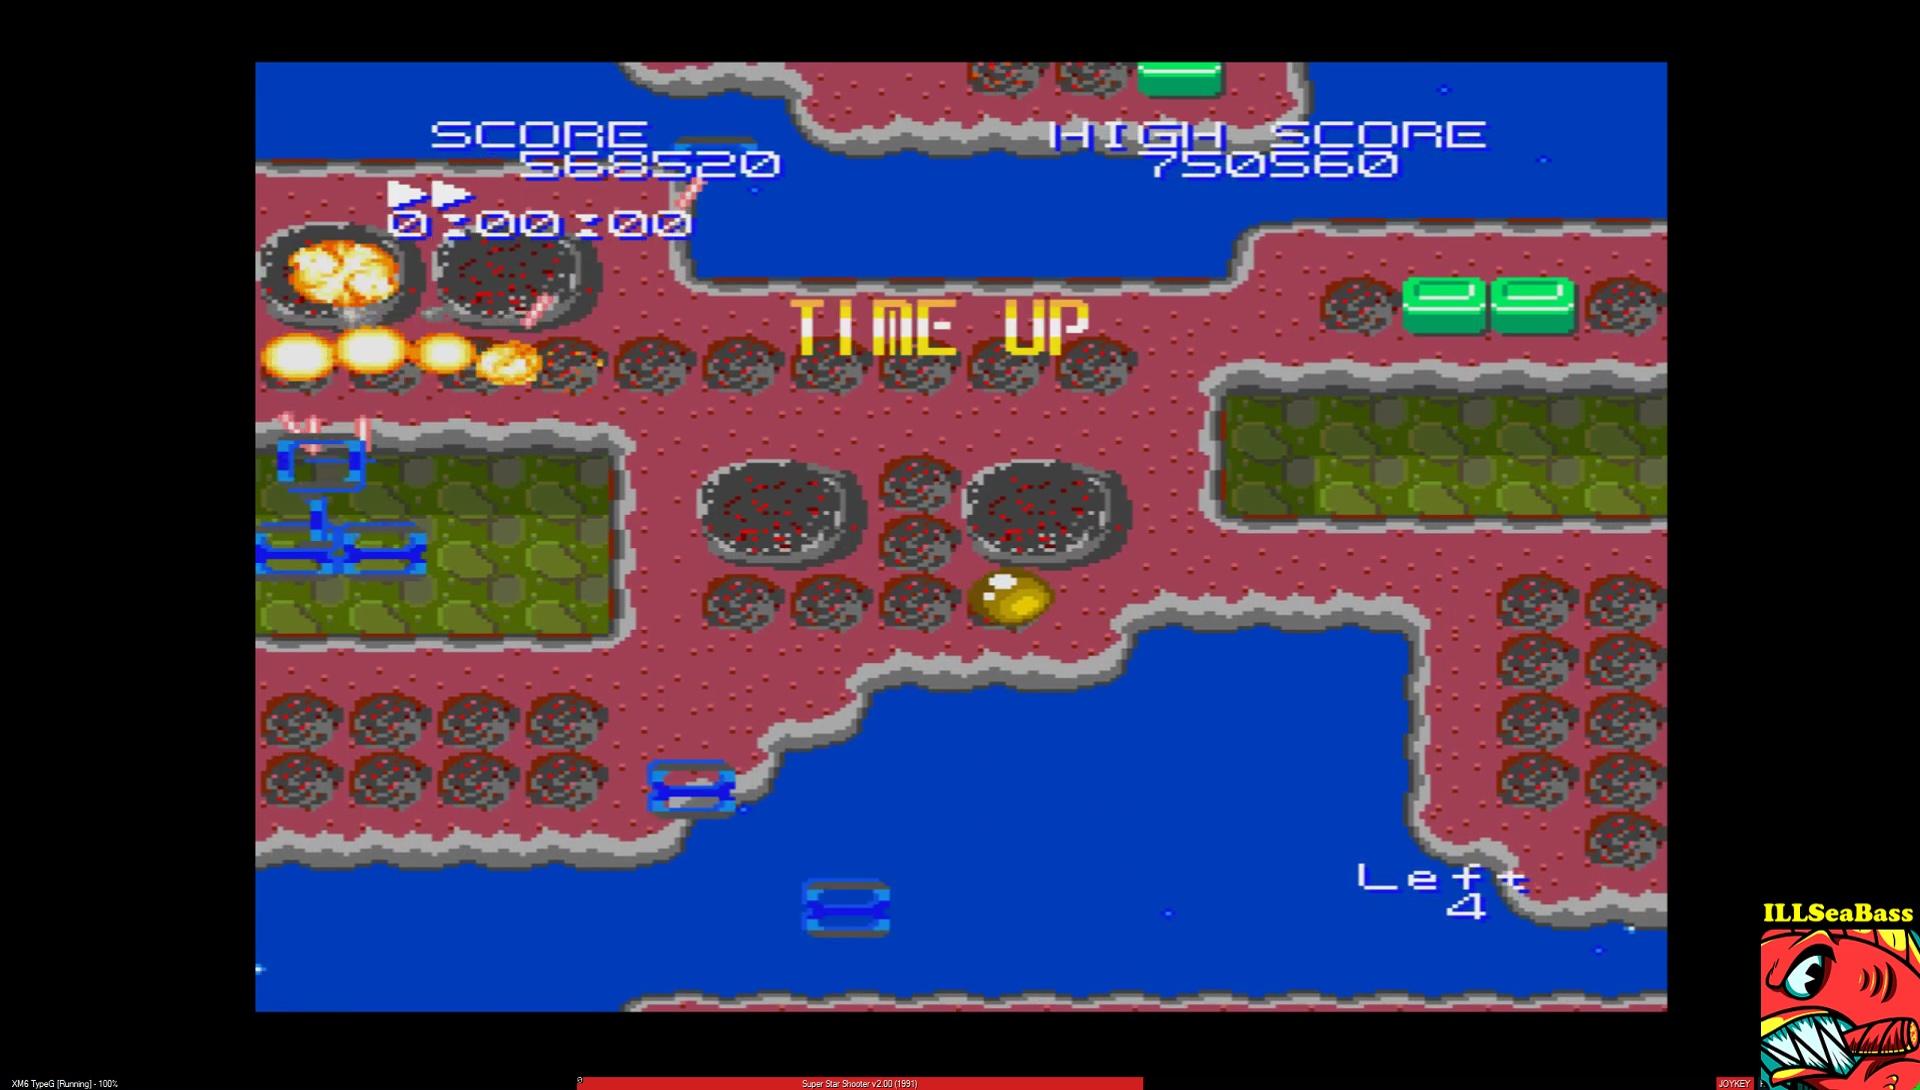 ILLSeaBass: Super Star Shooter: Version 2.00 [2 Minutes Game] (Sharp X68000 Emulated) 568,520 points on 2017-02-28 22:35:23